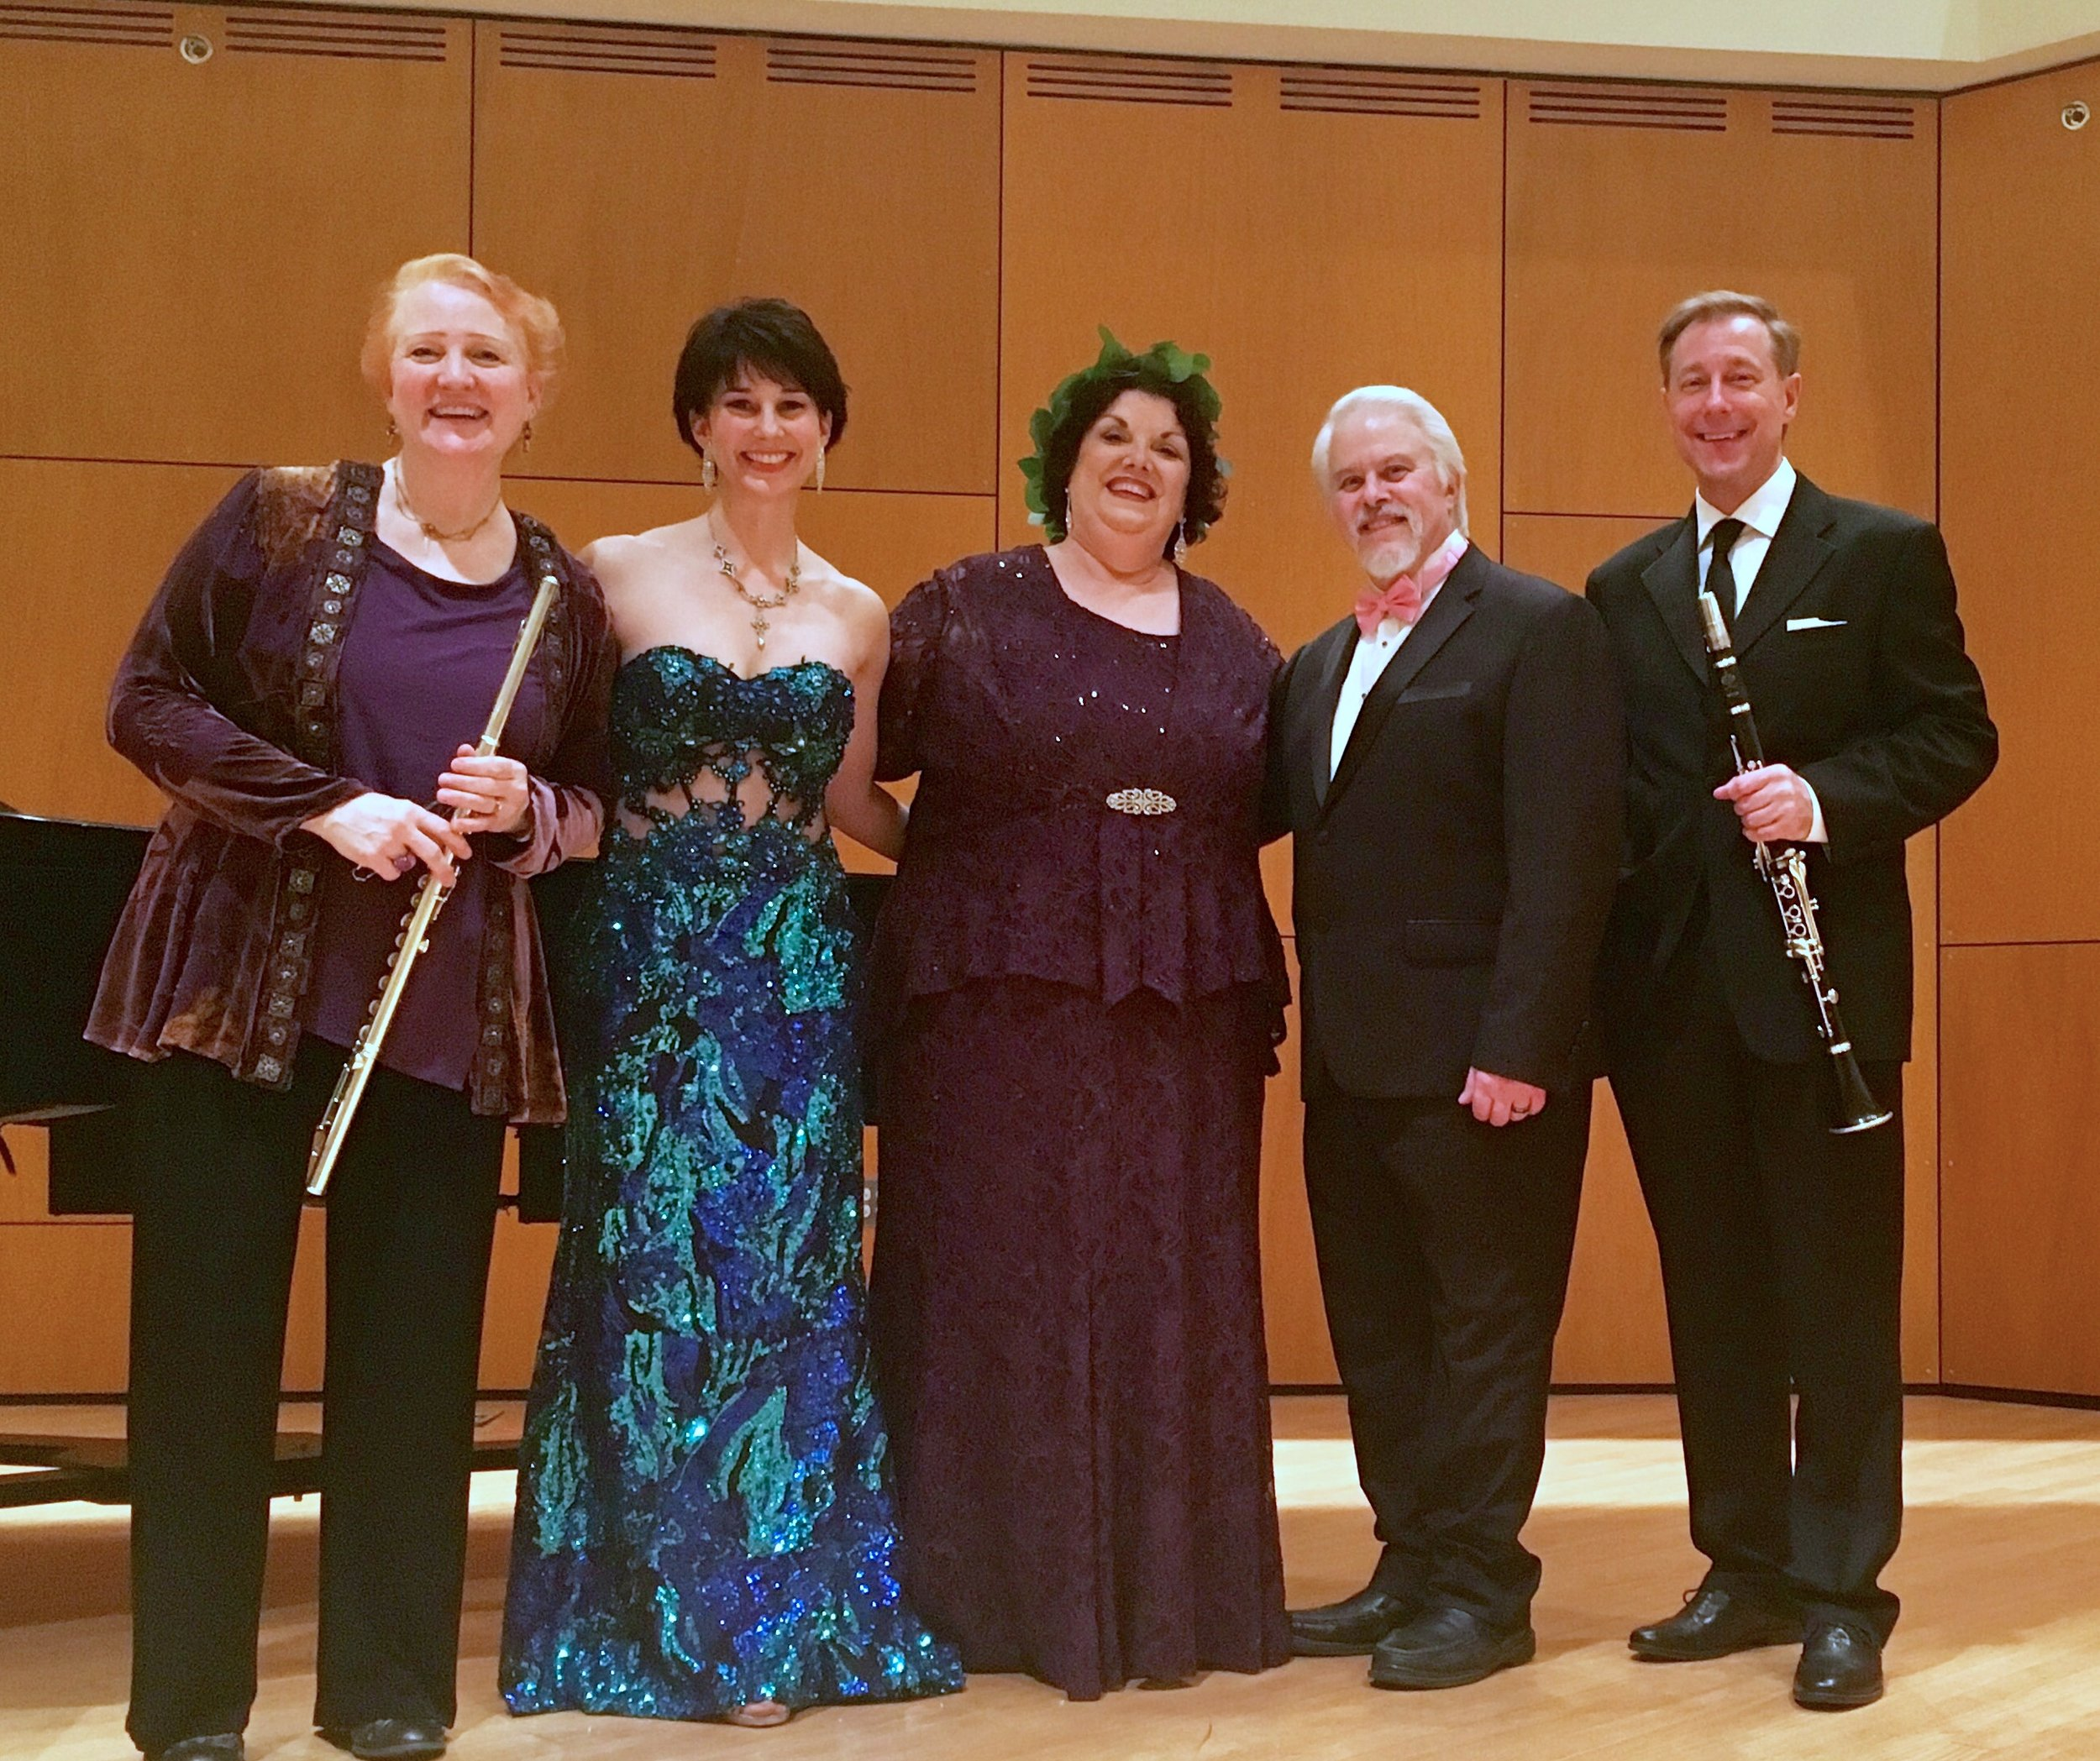 MSU Faculty members Barbara Dever & Ron Levy with Margaret & Don and guest artist Kristen Plumley, soprano